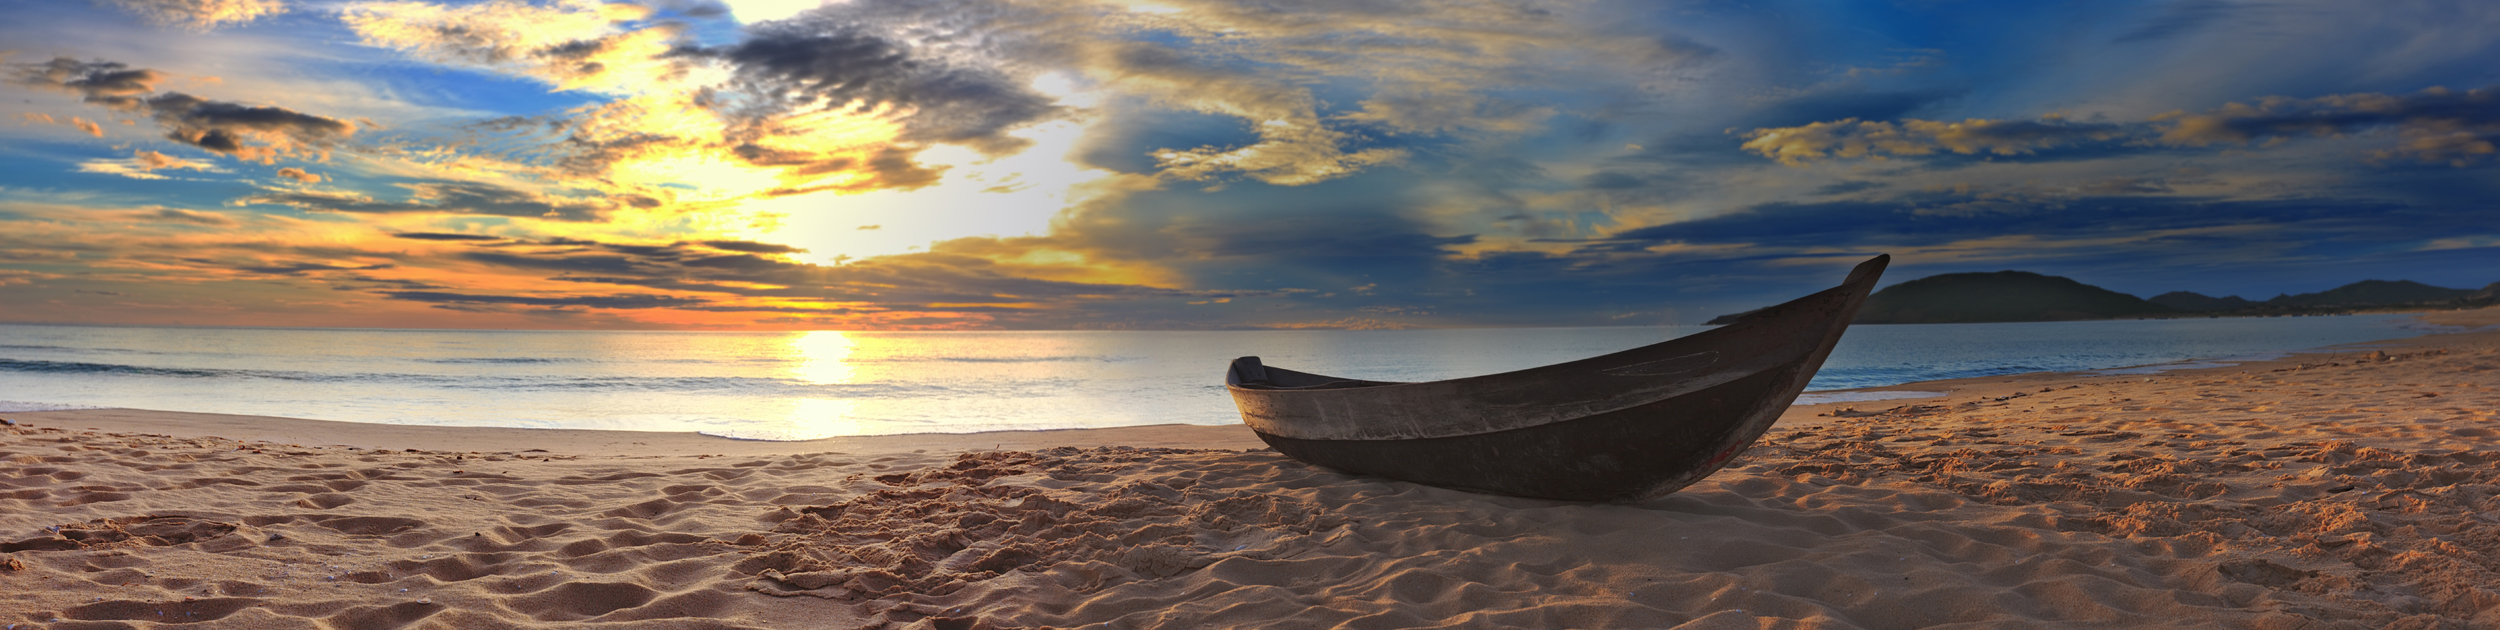 canoe resting on the shore of the ocean at sunset time